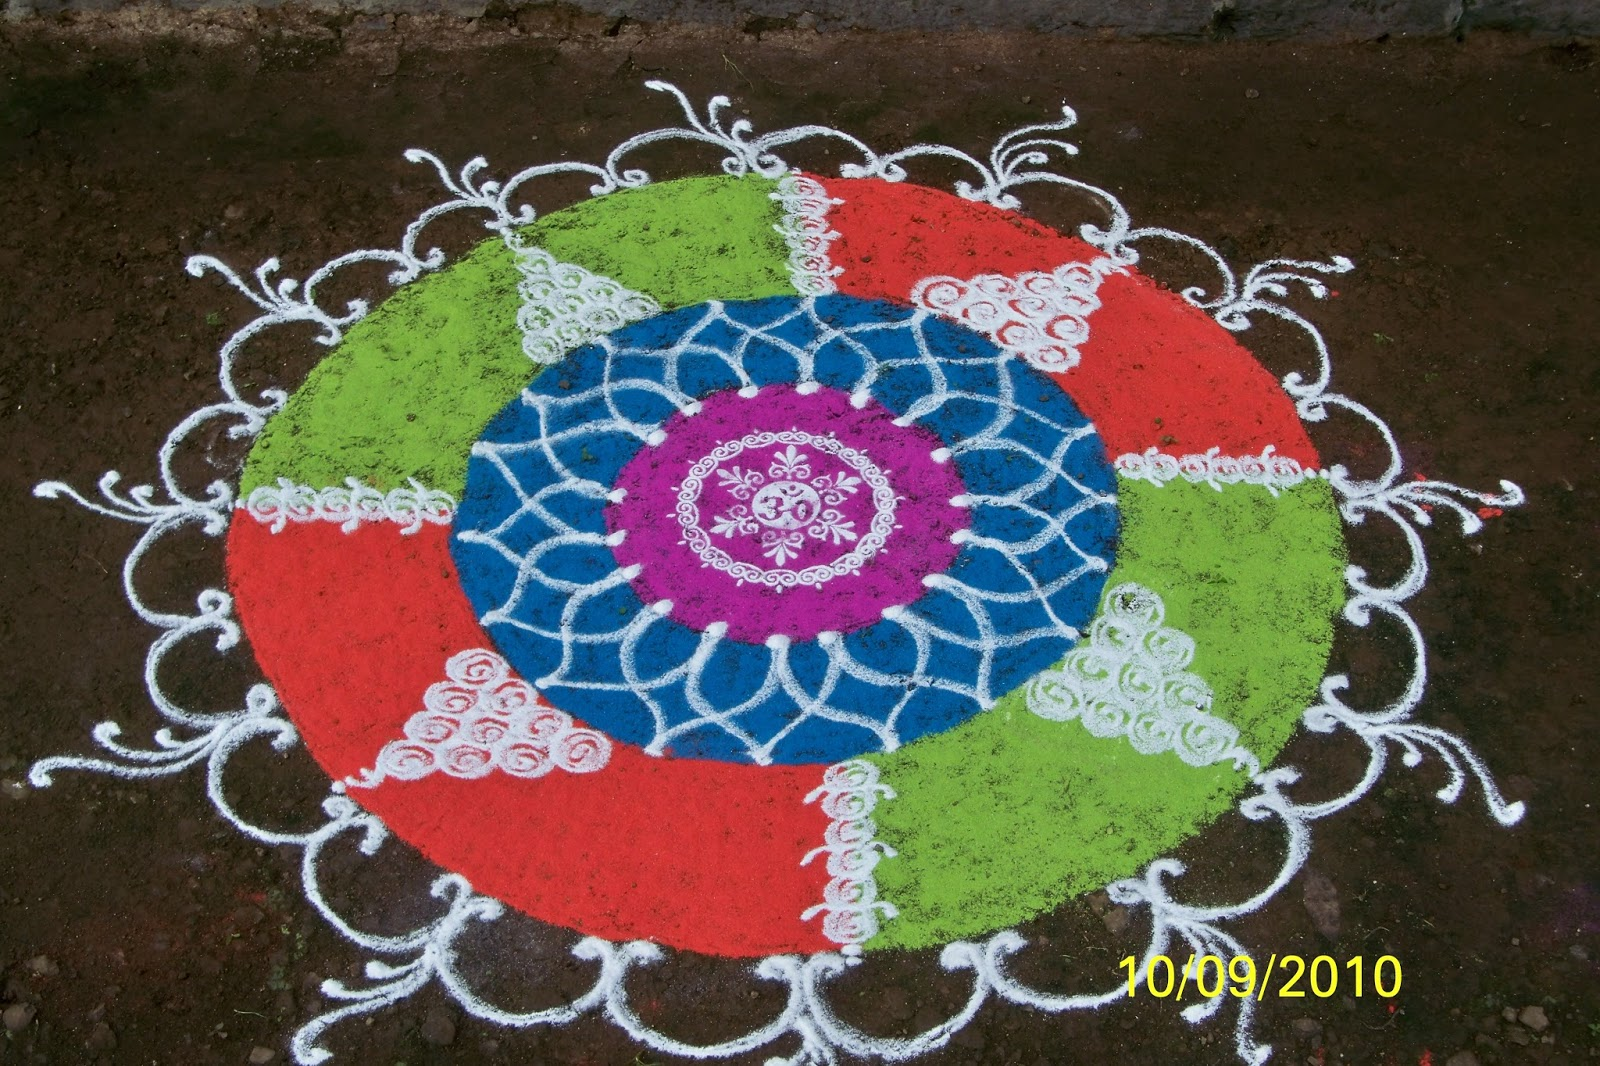 Rangoli Designs For Competition With Concepts Although rangoli has its